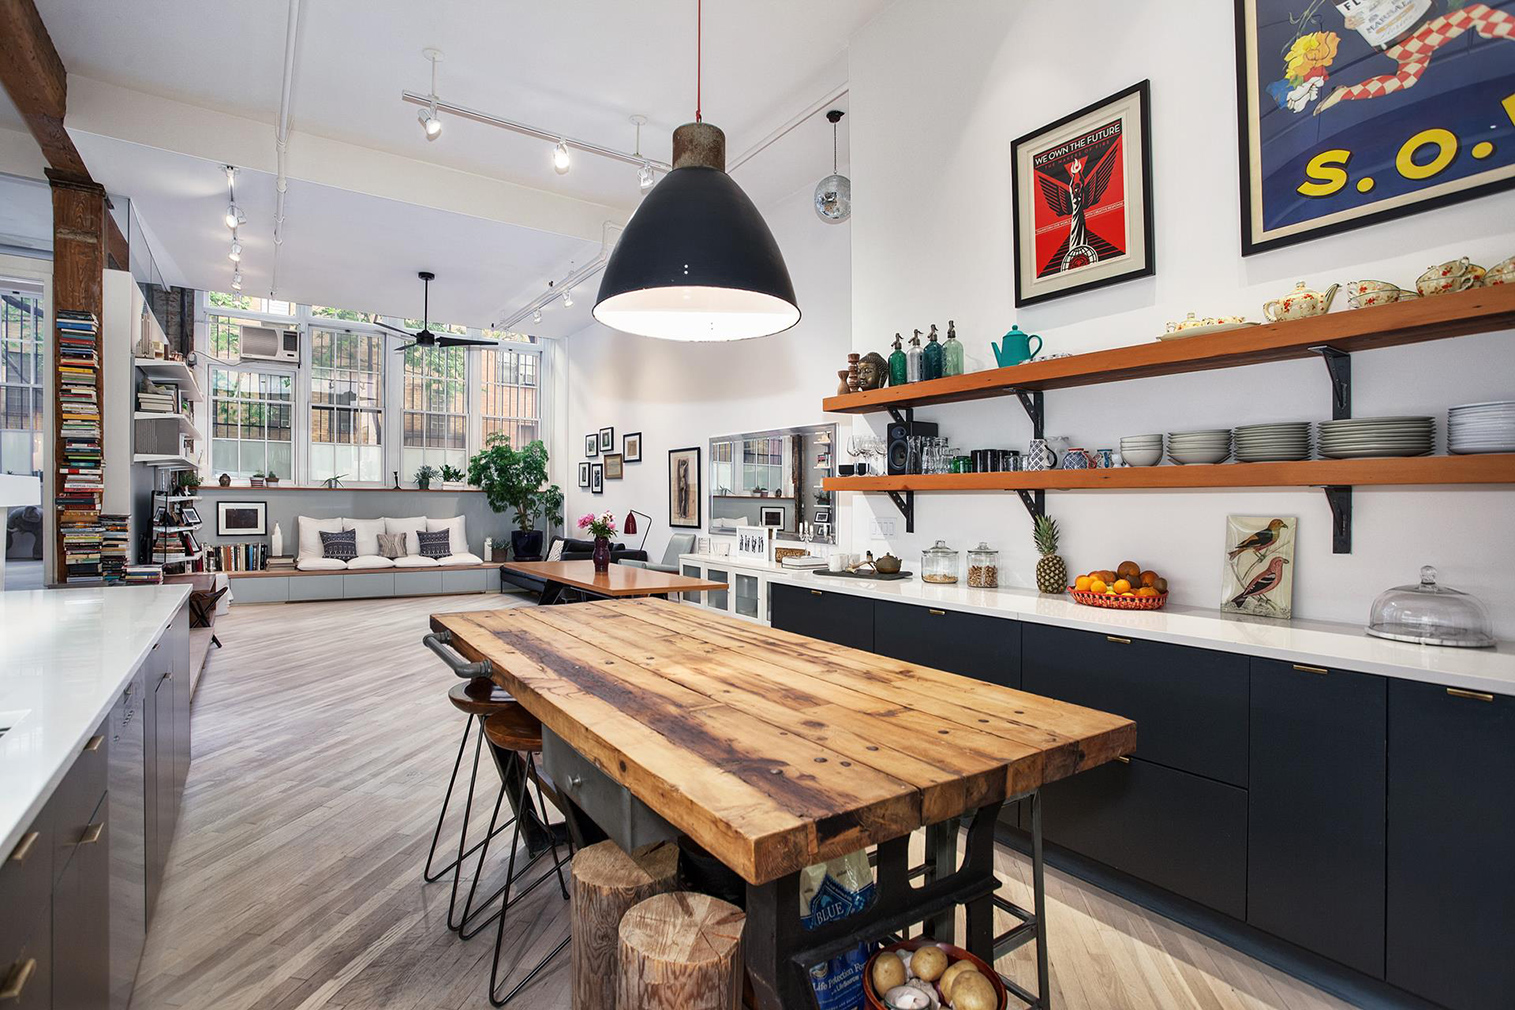 Property Of The Week A SoHo Loft With Soaring Ceilings - Contemporary soho loft with exposed brick and wood beams